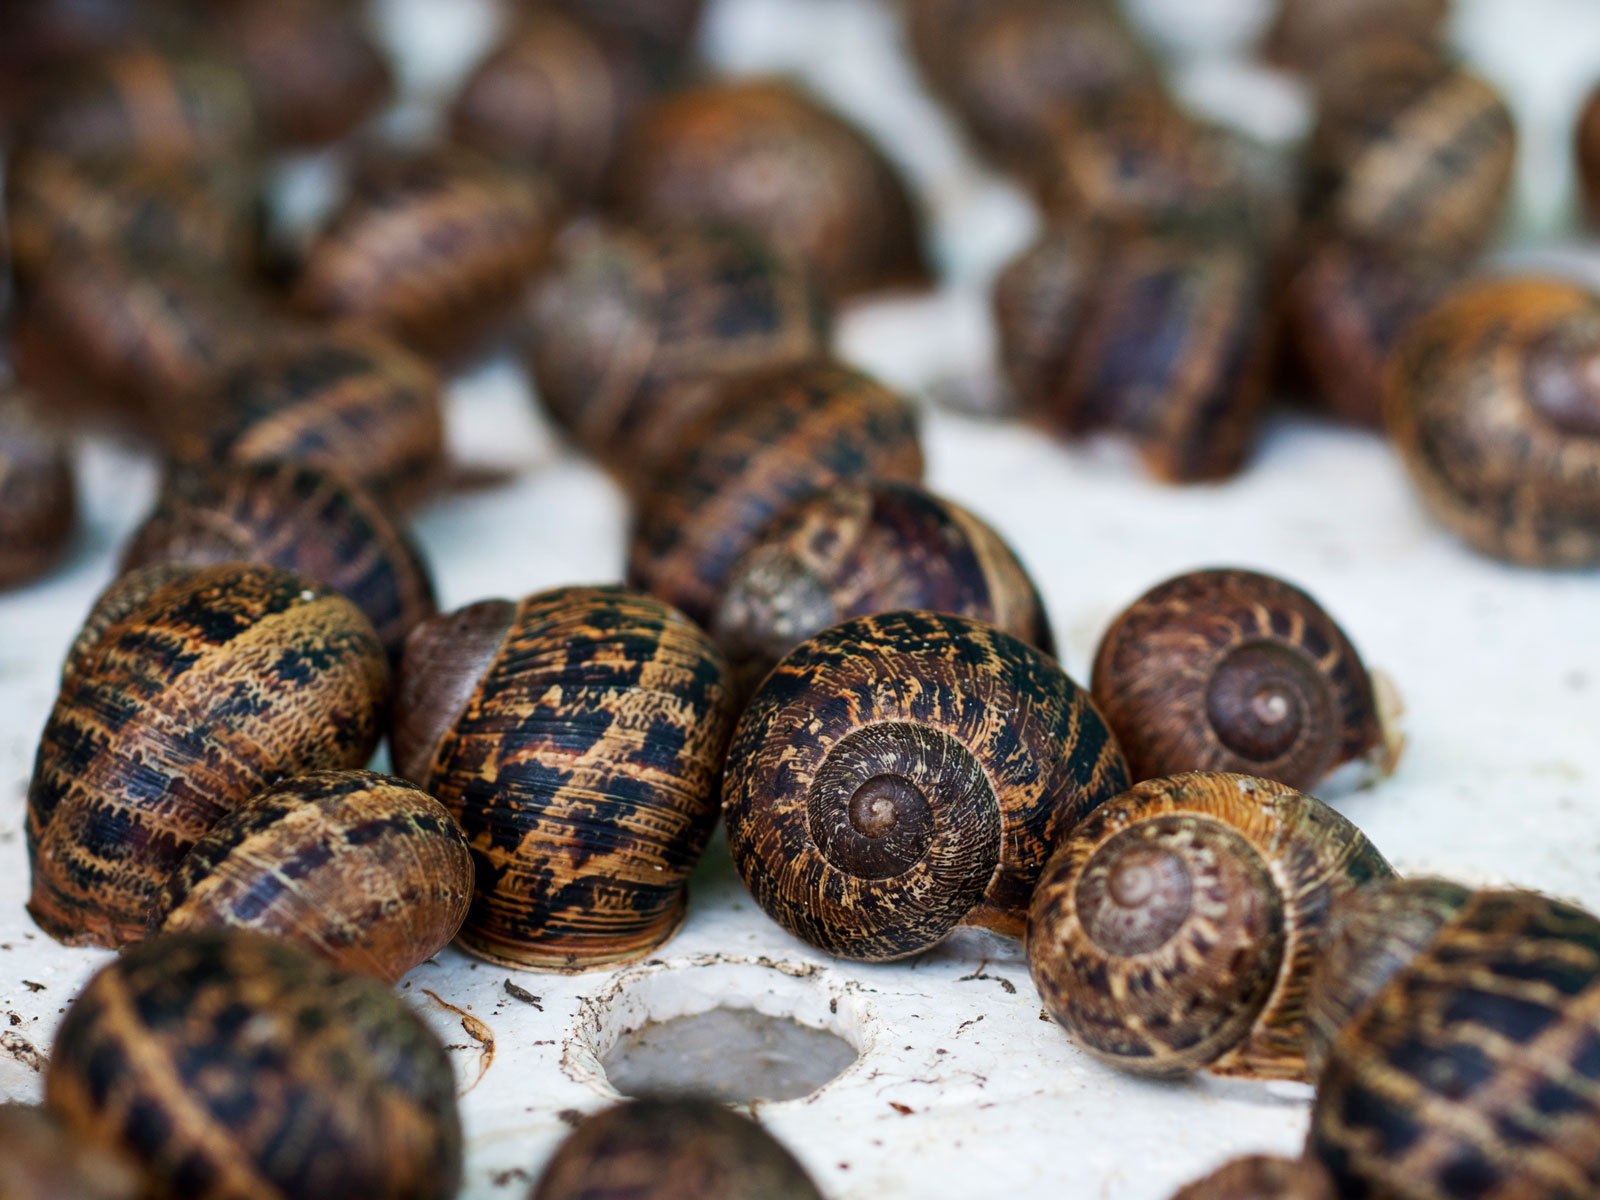 American Chefs Can't Import Live Snails, But Two Farms Found a Way Around That